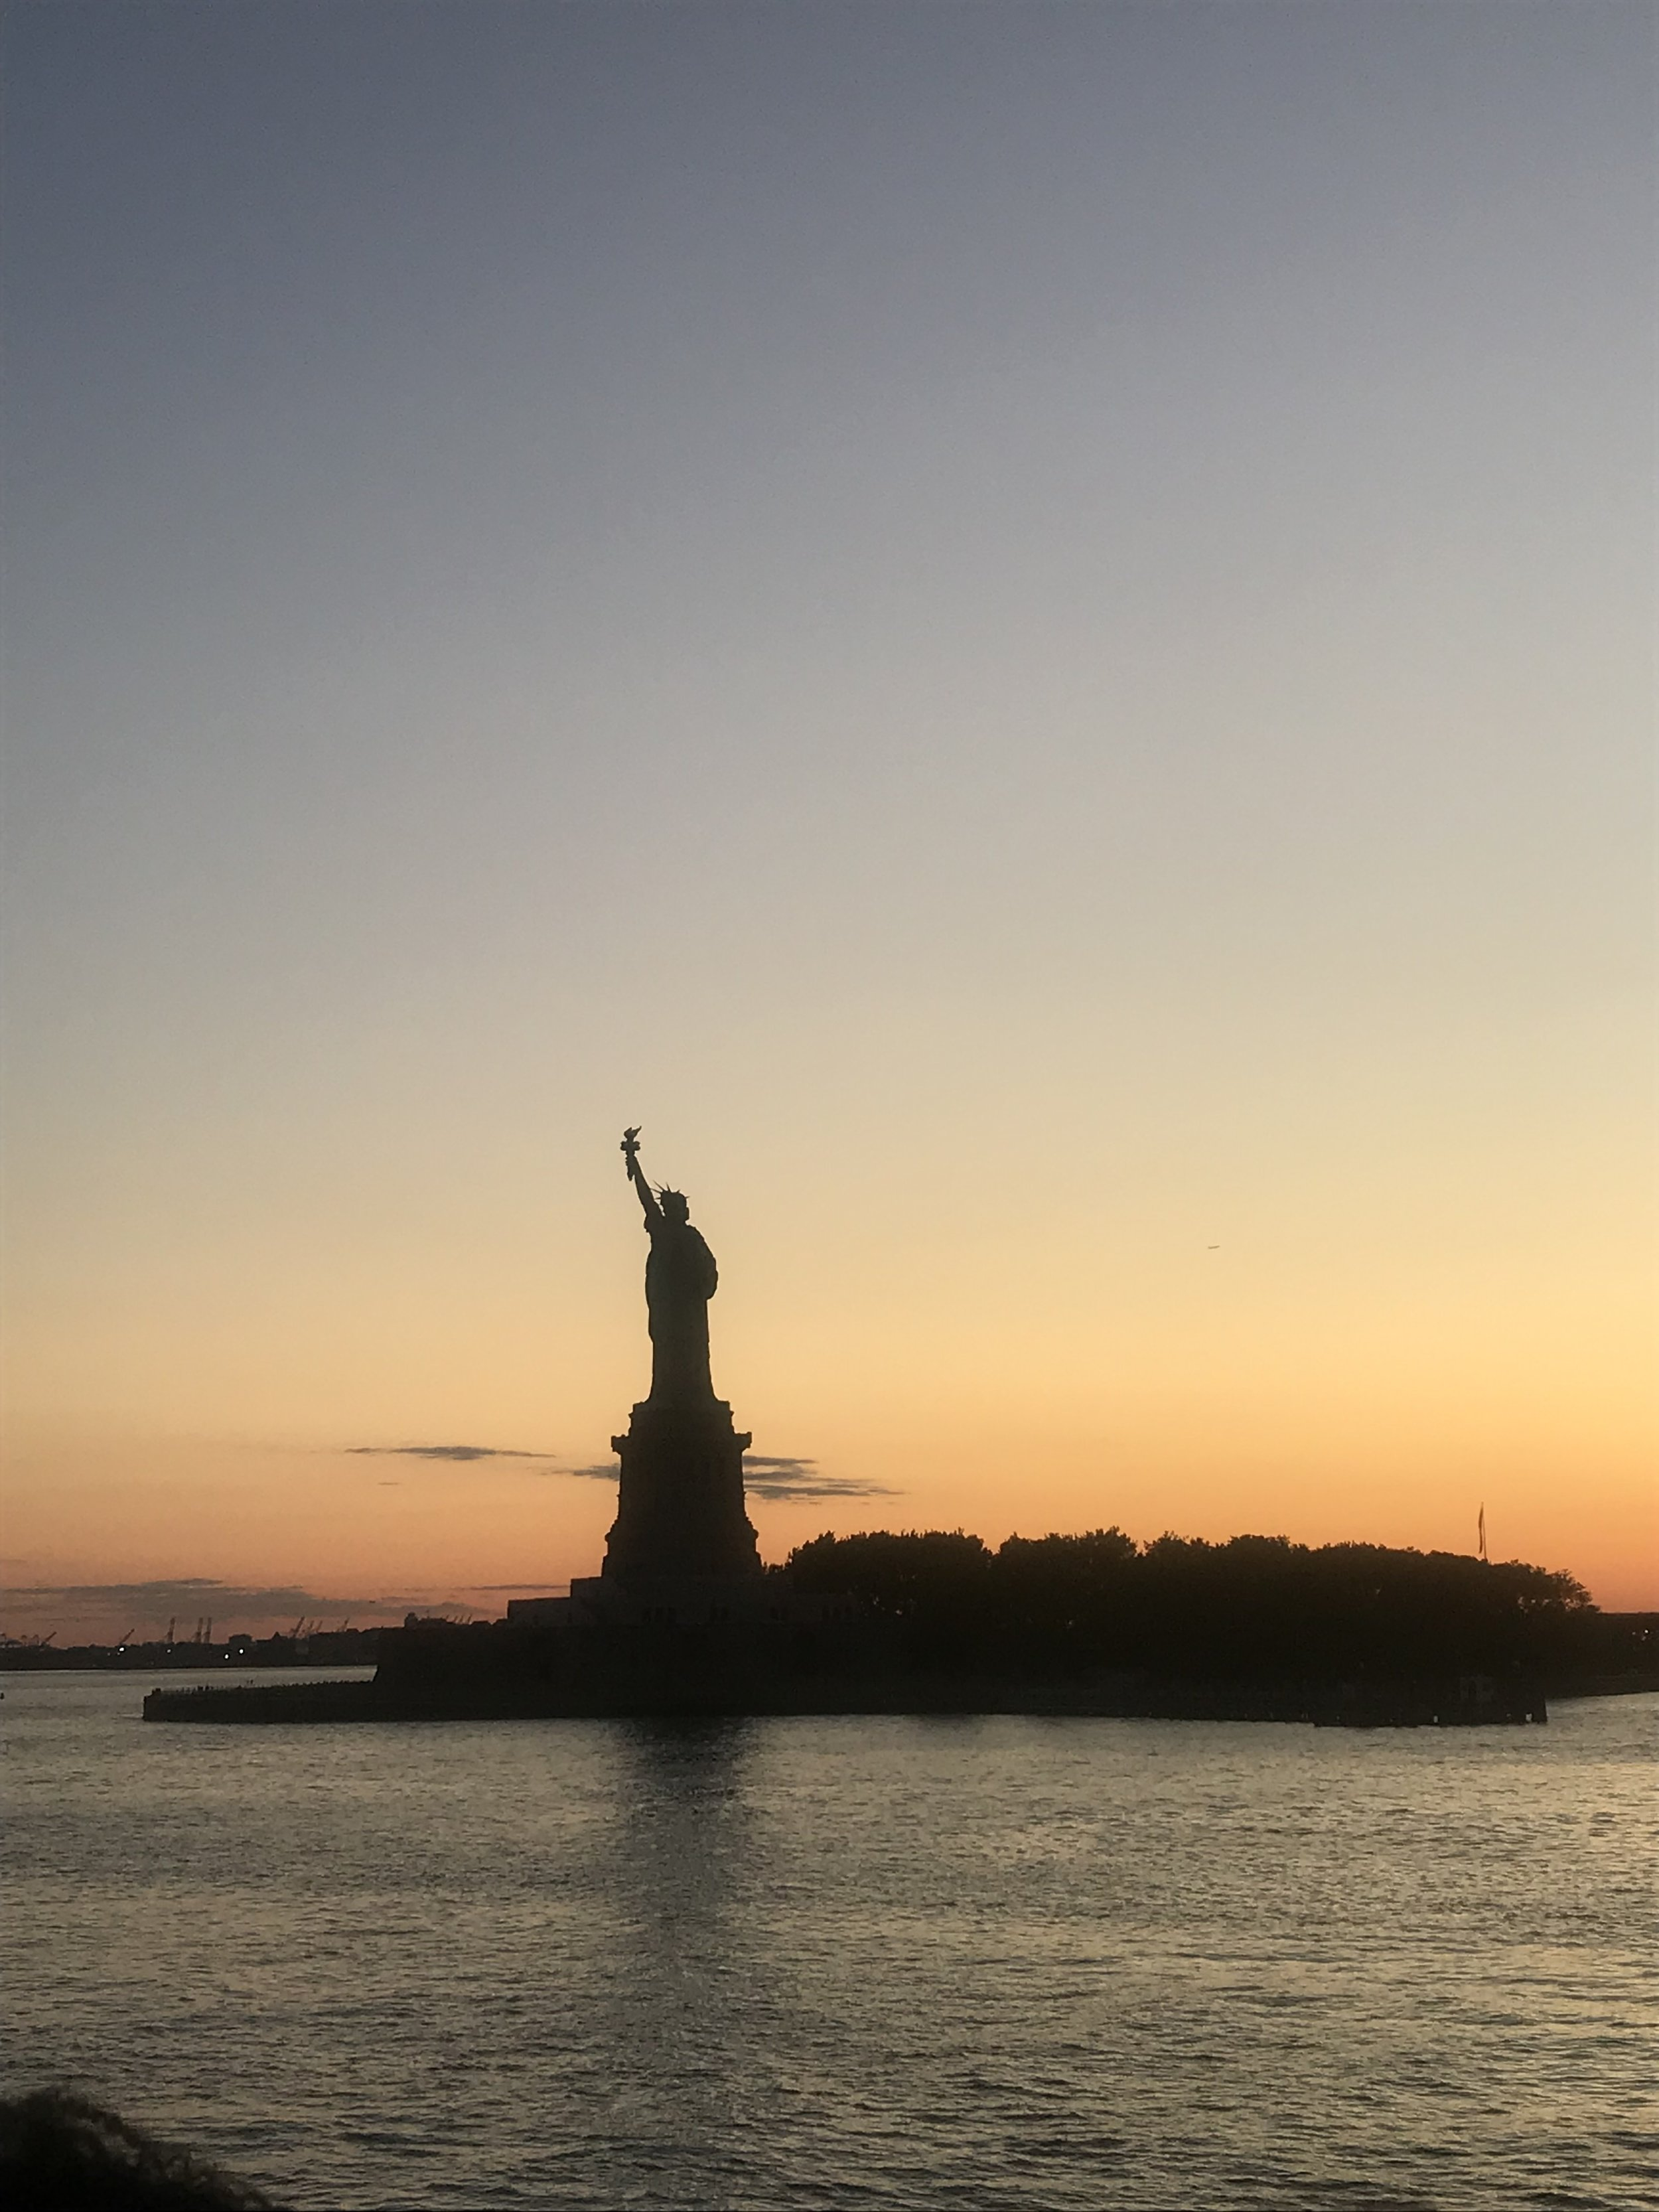 The Statue of Liberty at sunset from our sunset cruise.